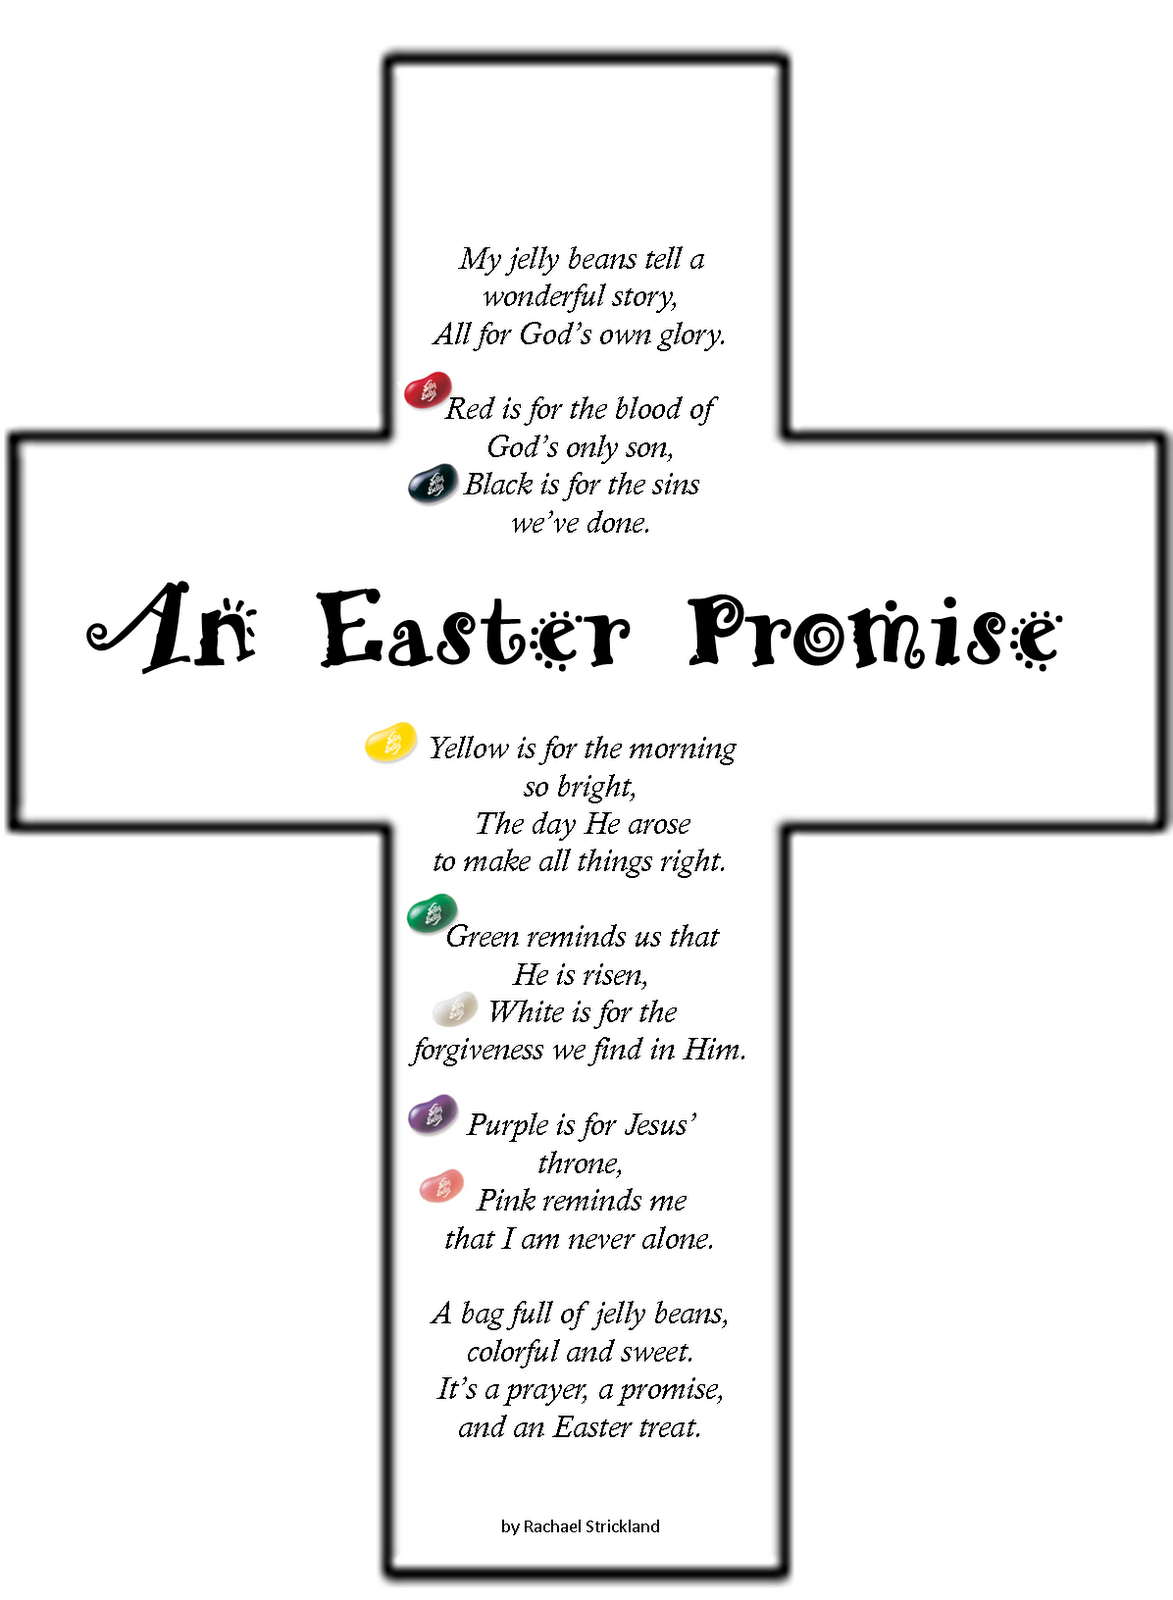 Teaching Integrity Easter Jelly Bean Poem